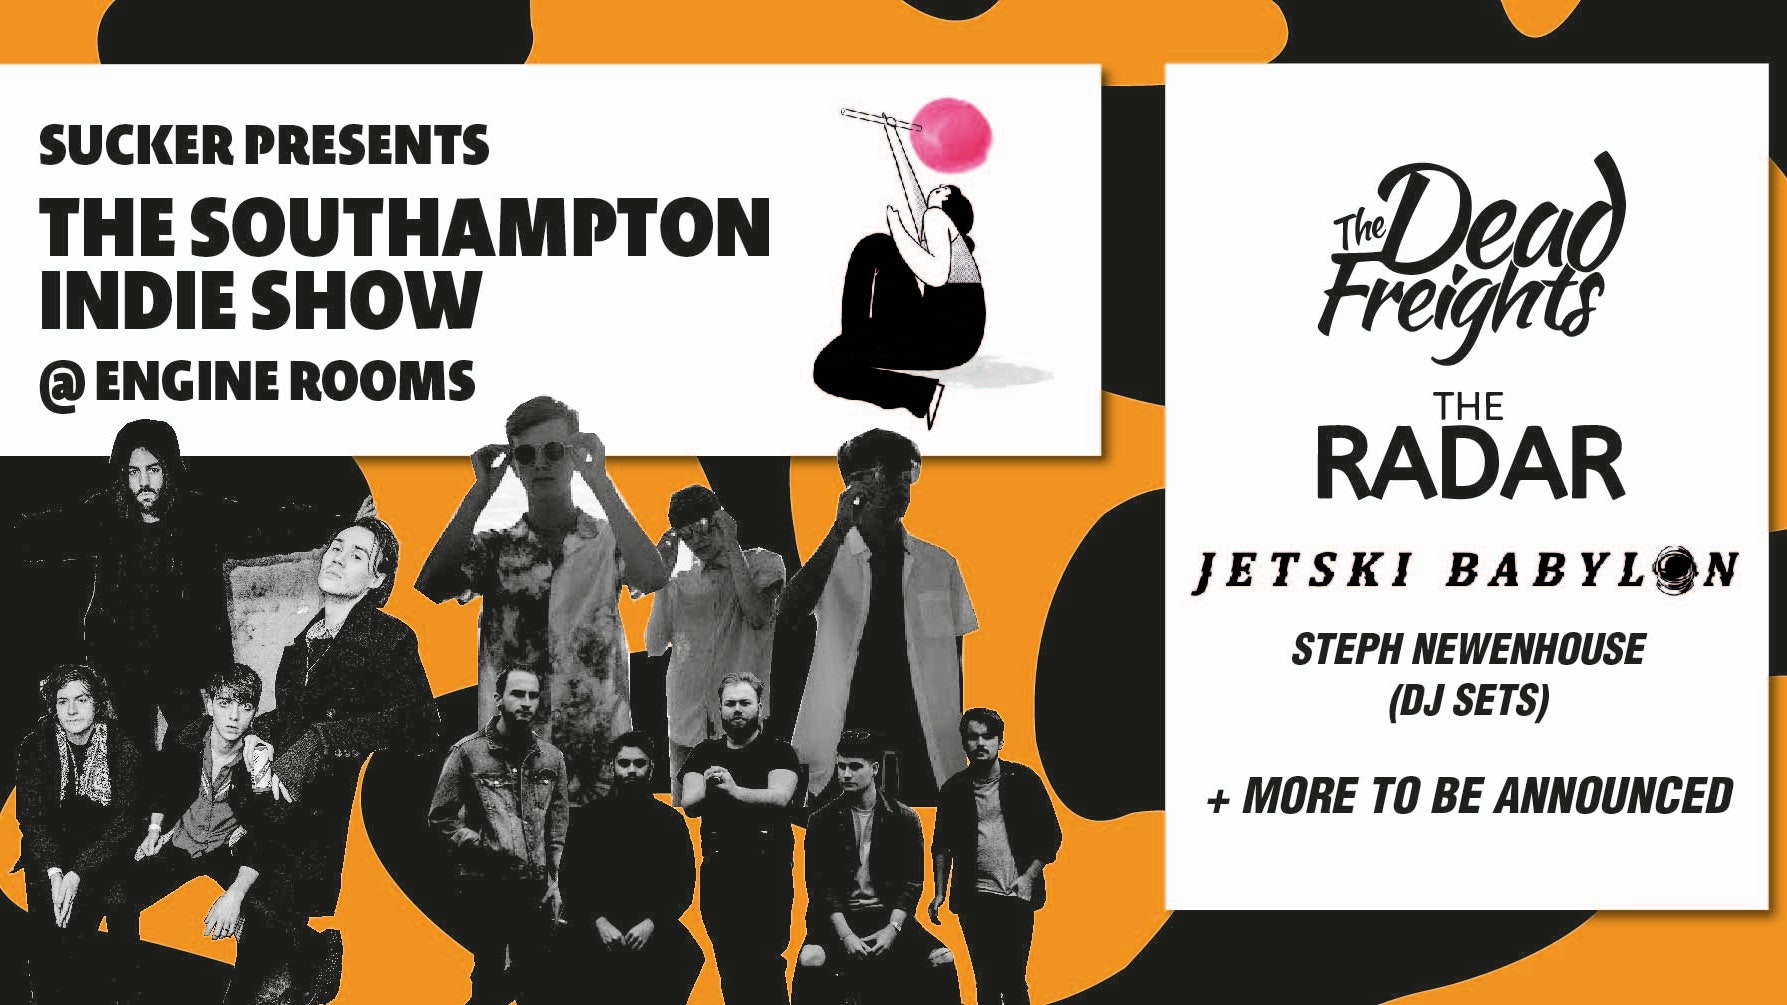 The Southampton Indie Show ft. The Dead Freights, The Radar and more